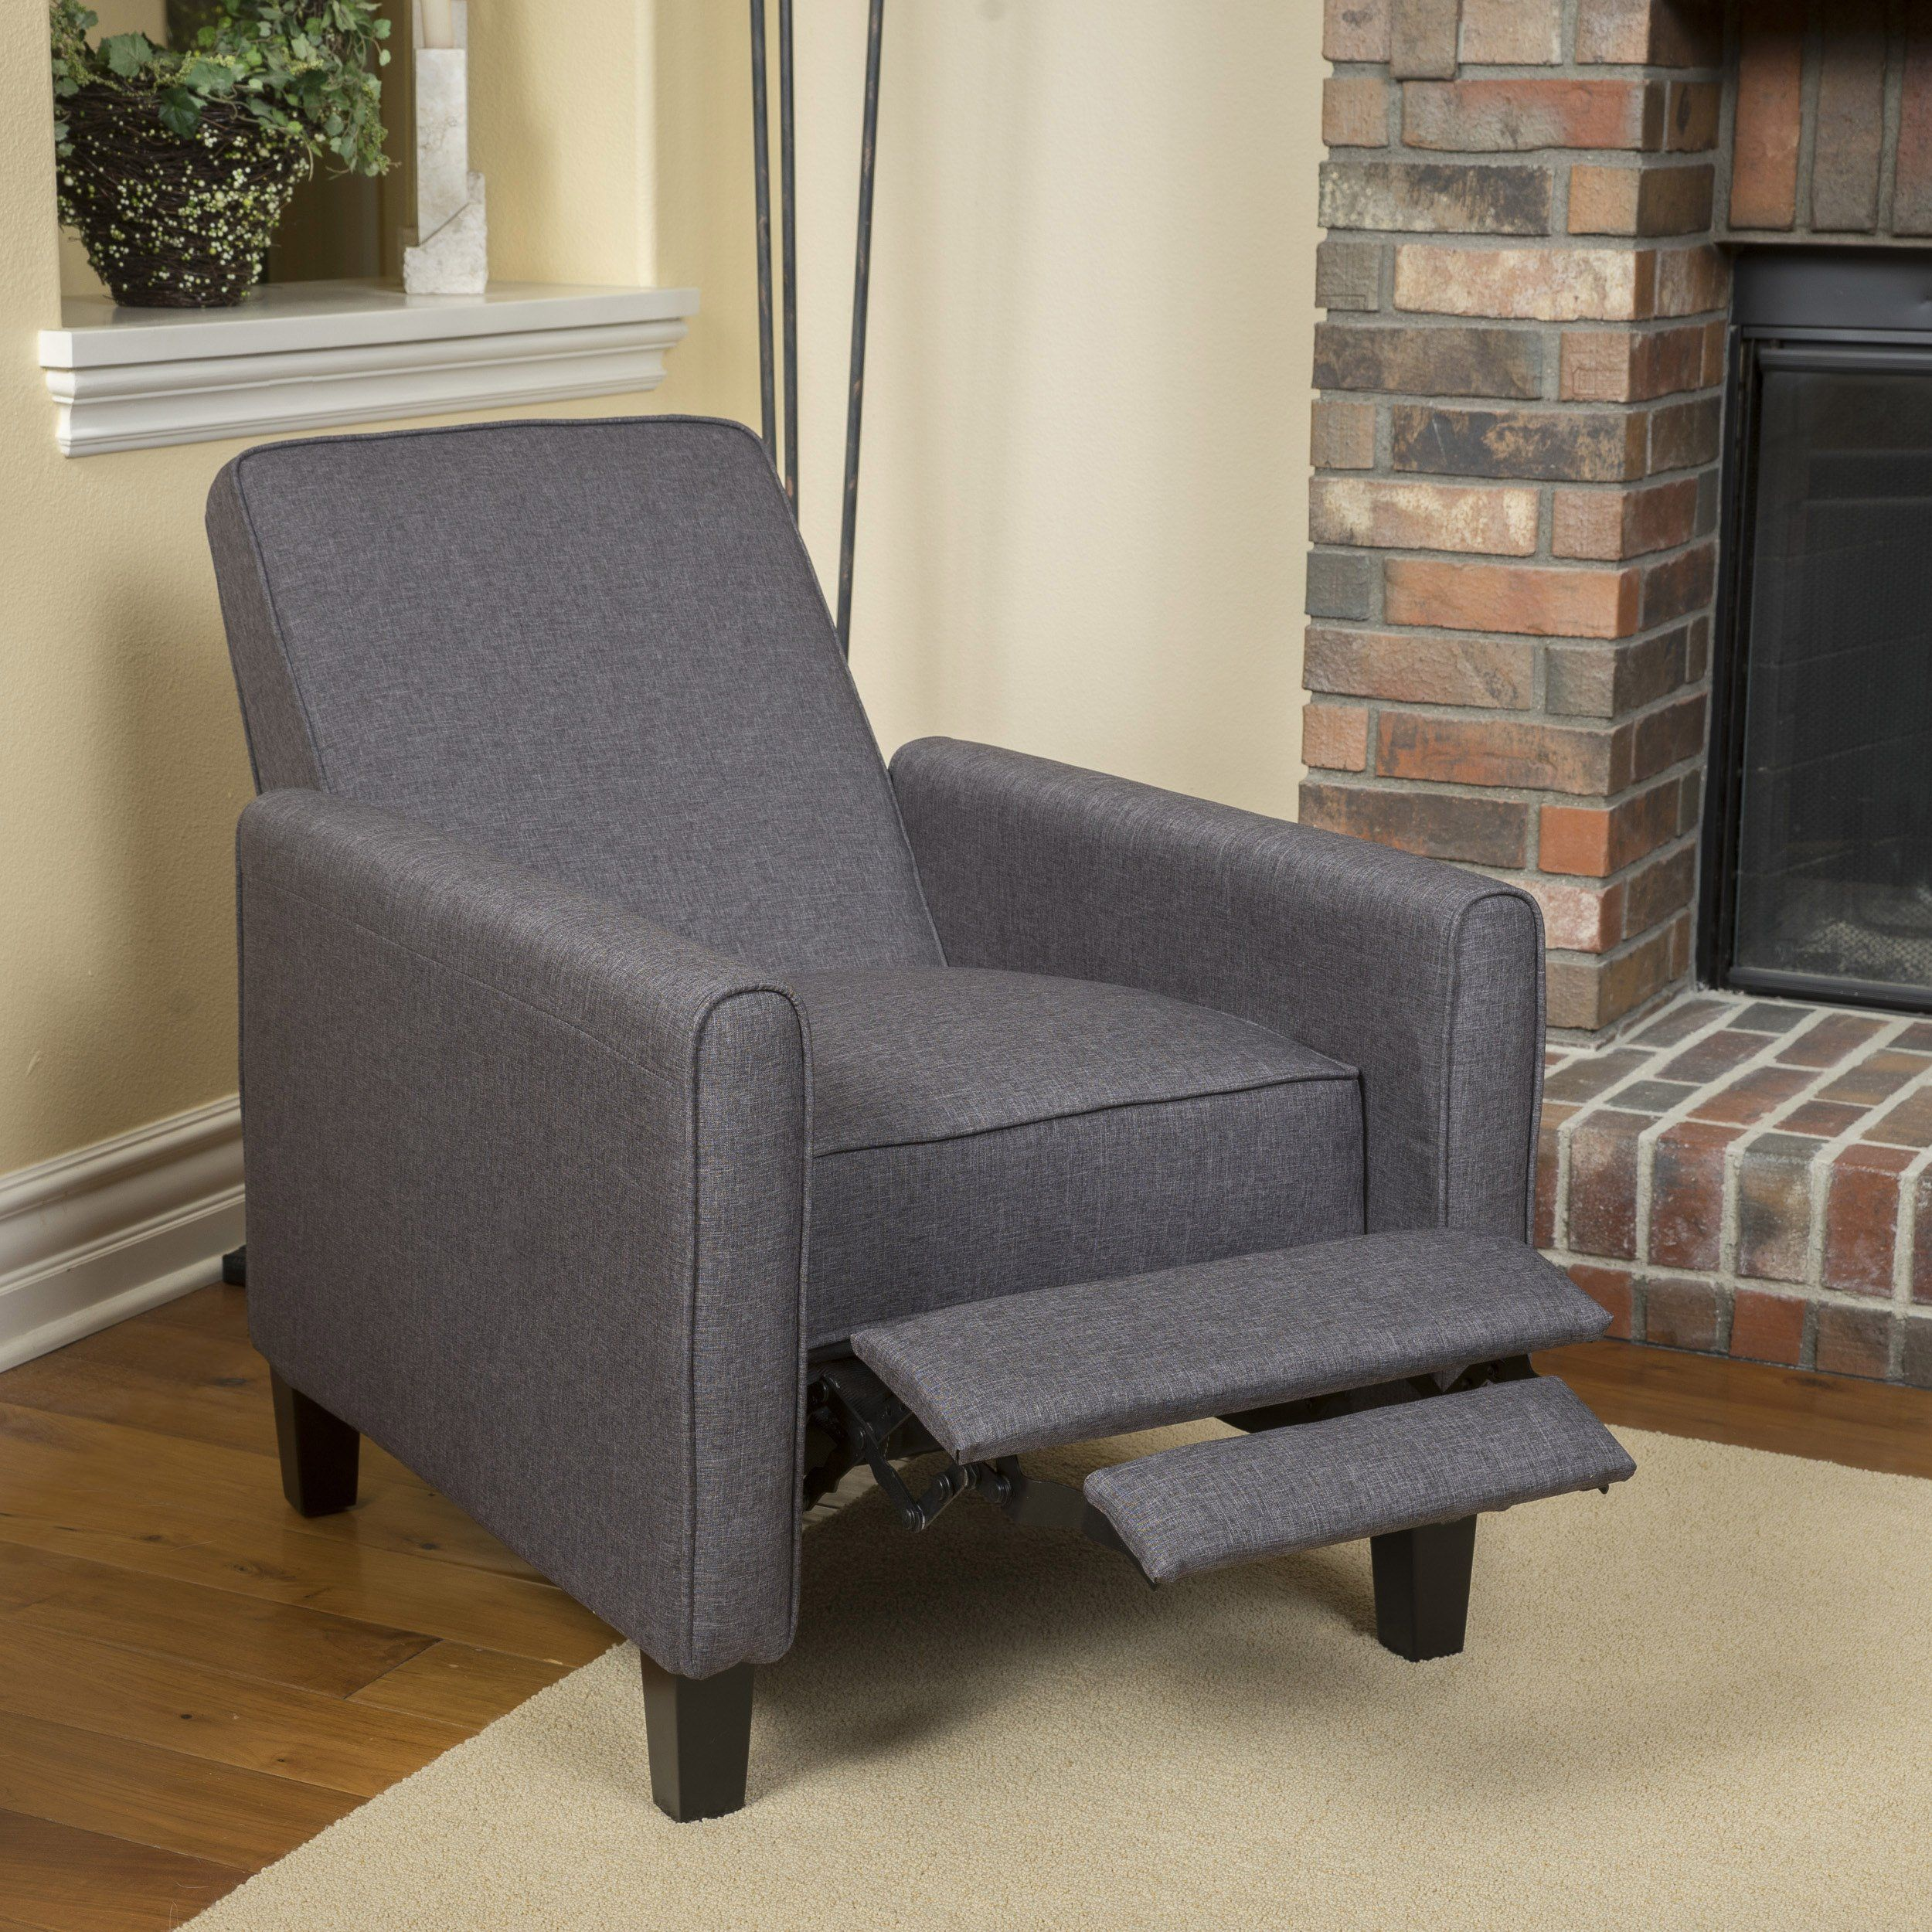 Best 14 Comfortable Chairs For Small Spaces To Cozy Up Your 400 x 300